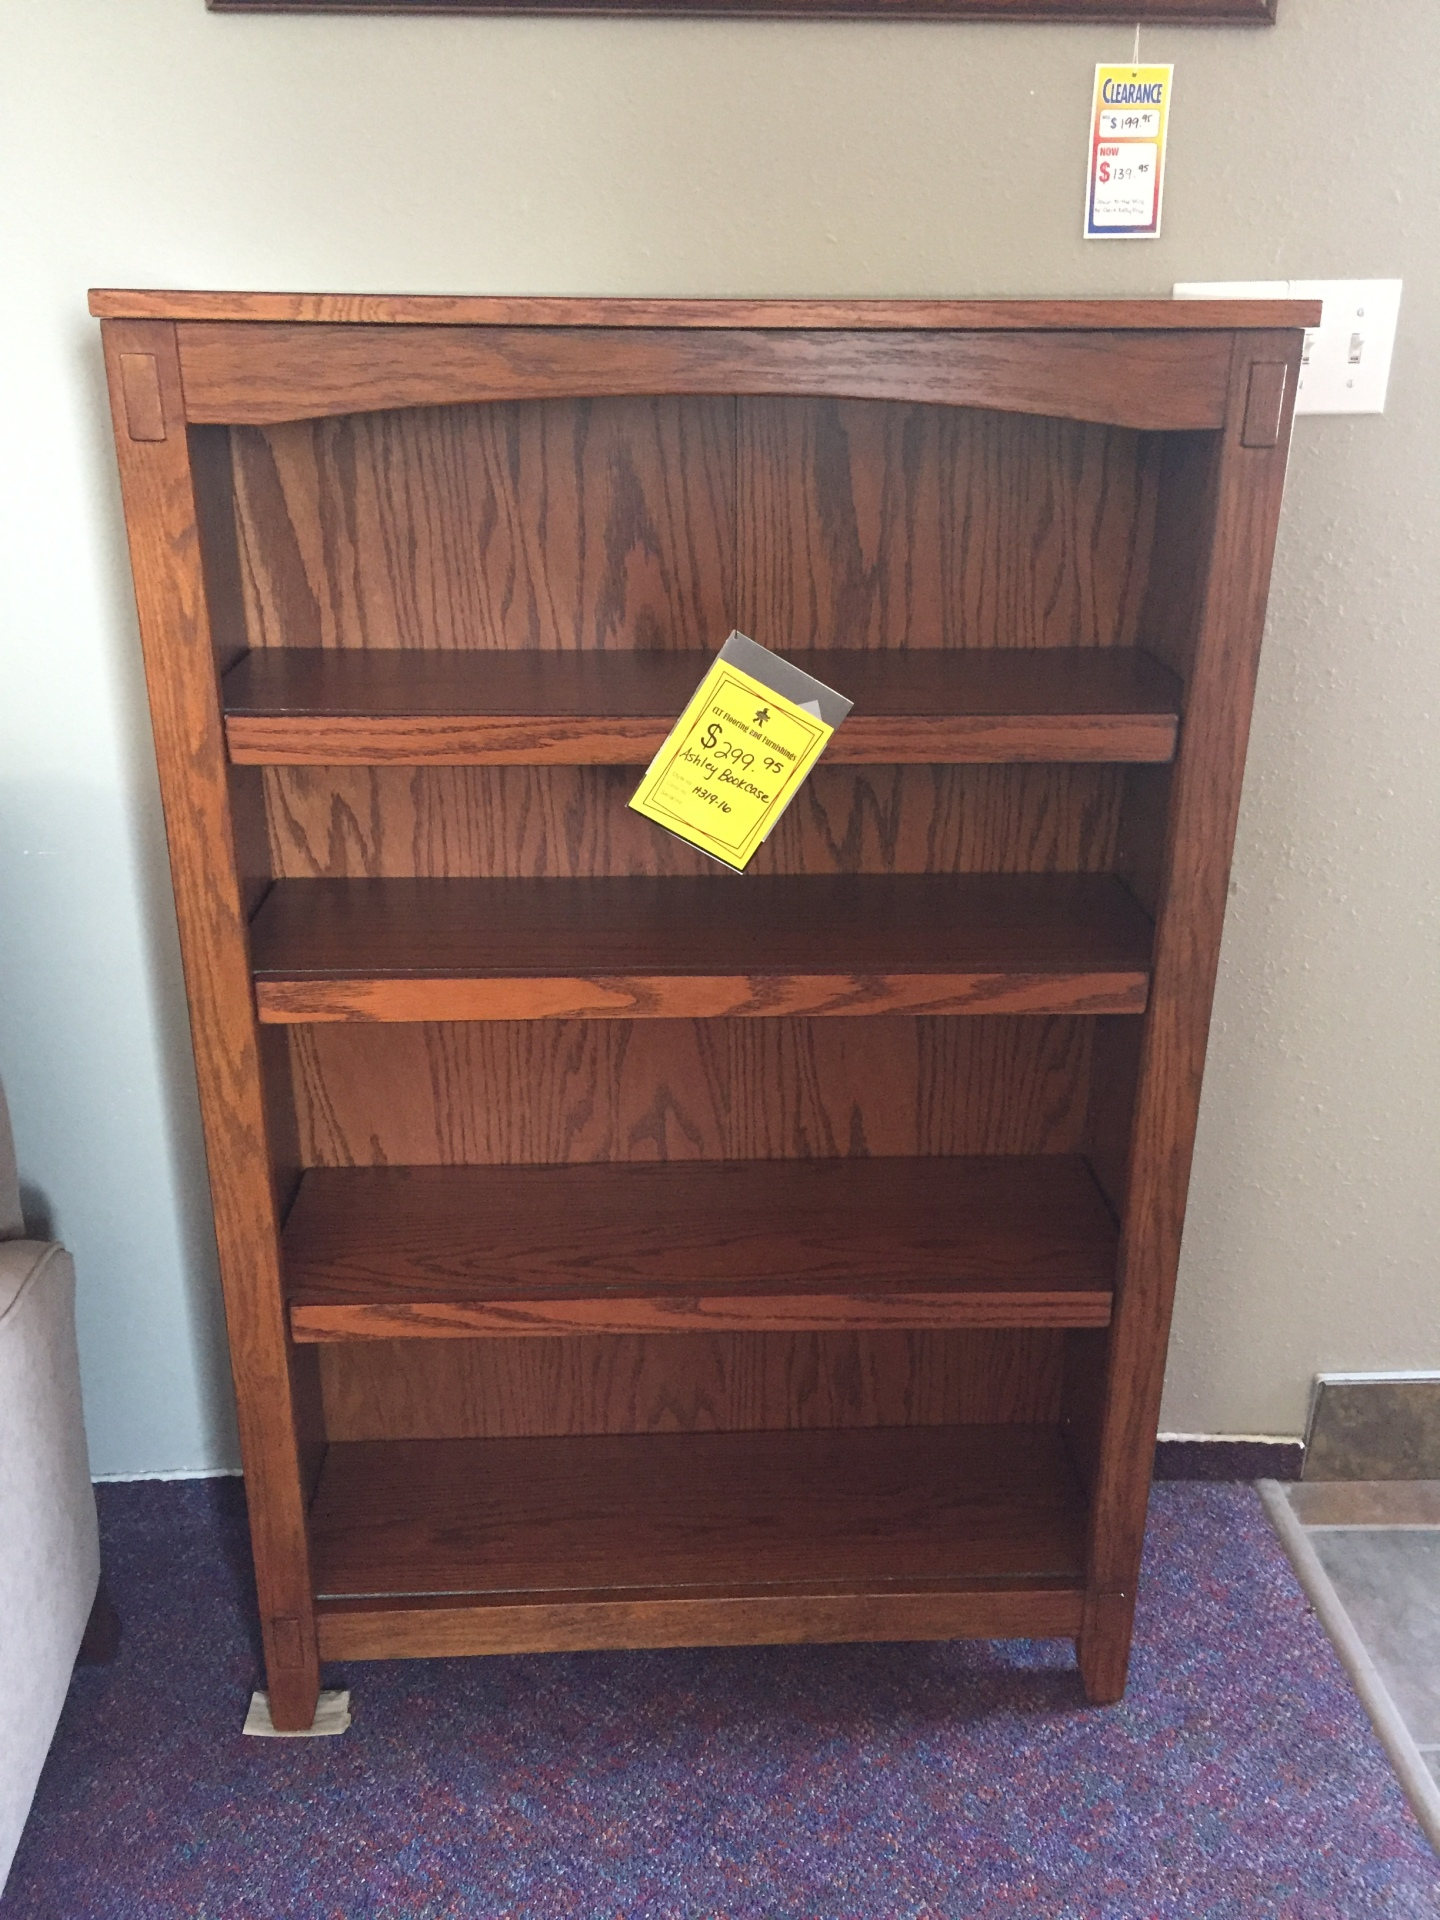 Ashley bookshelf- $299.95